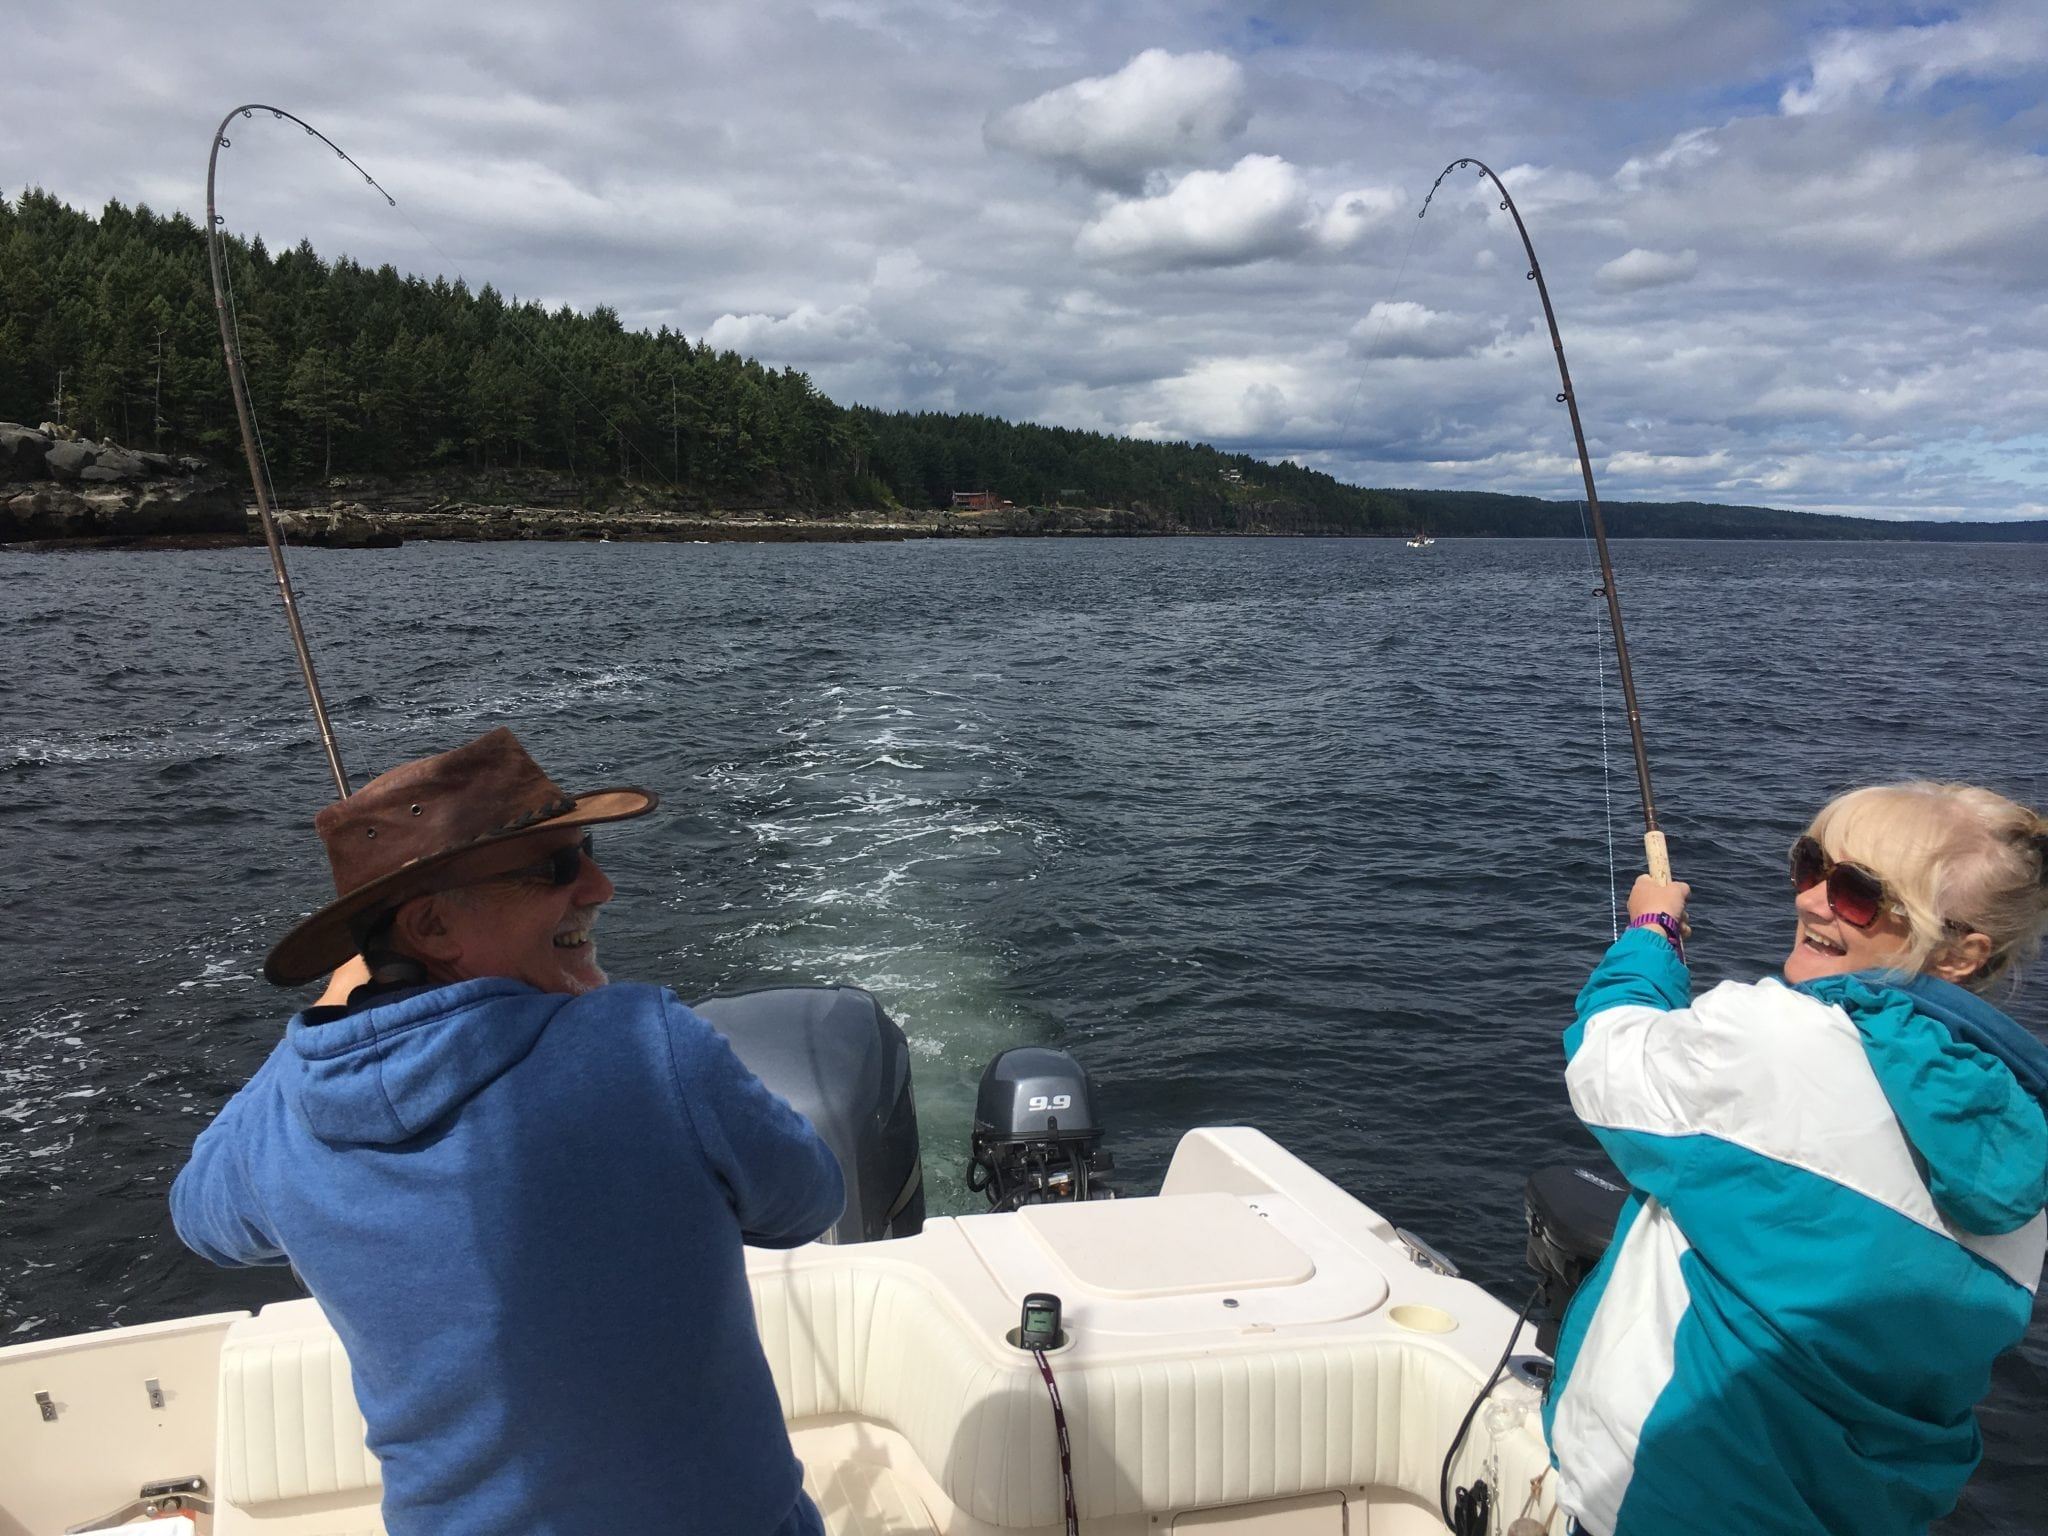 Two salmon hooked at the same time in the salt water off Vancouver